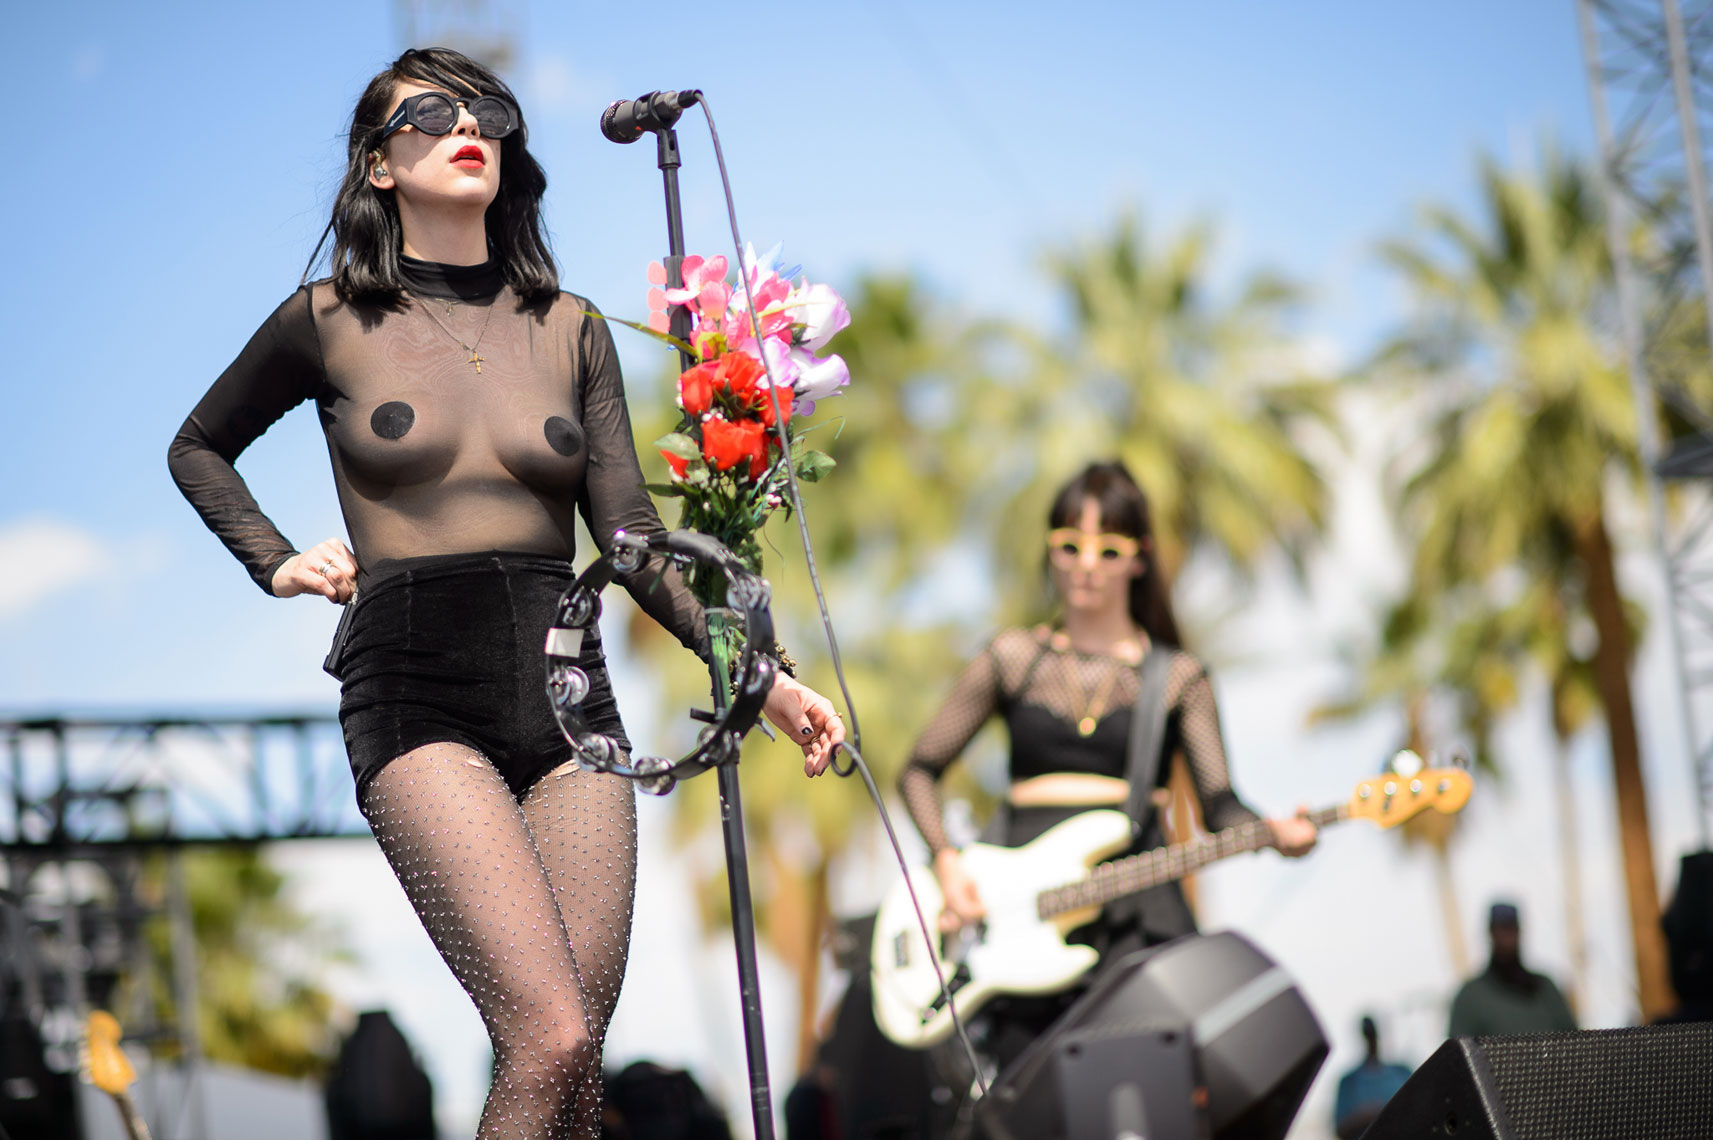 Dum Dum Girls at Coachella 2014